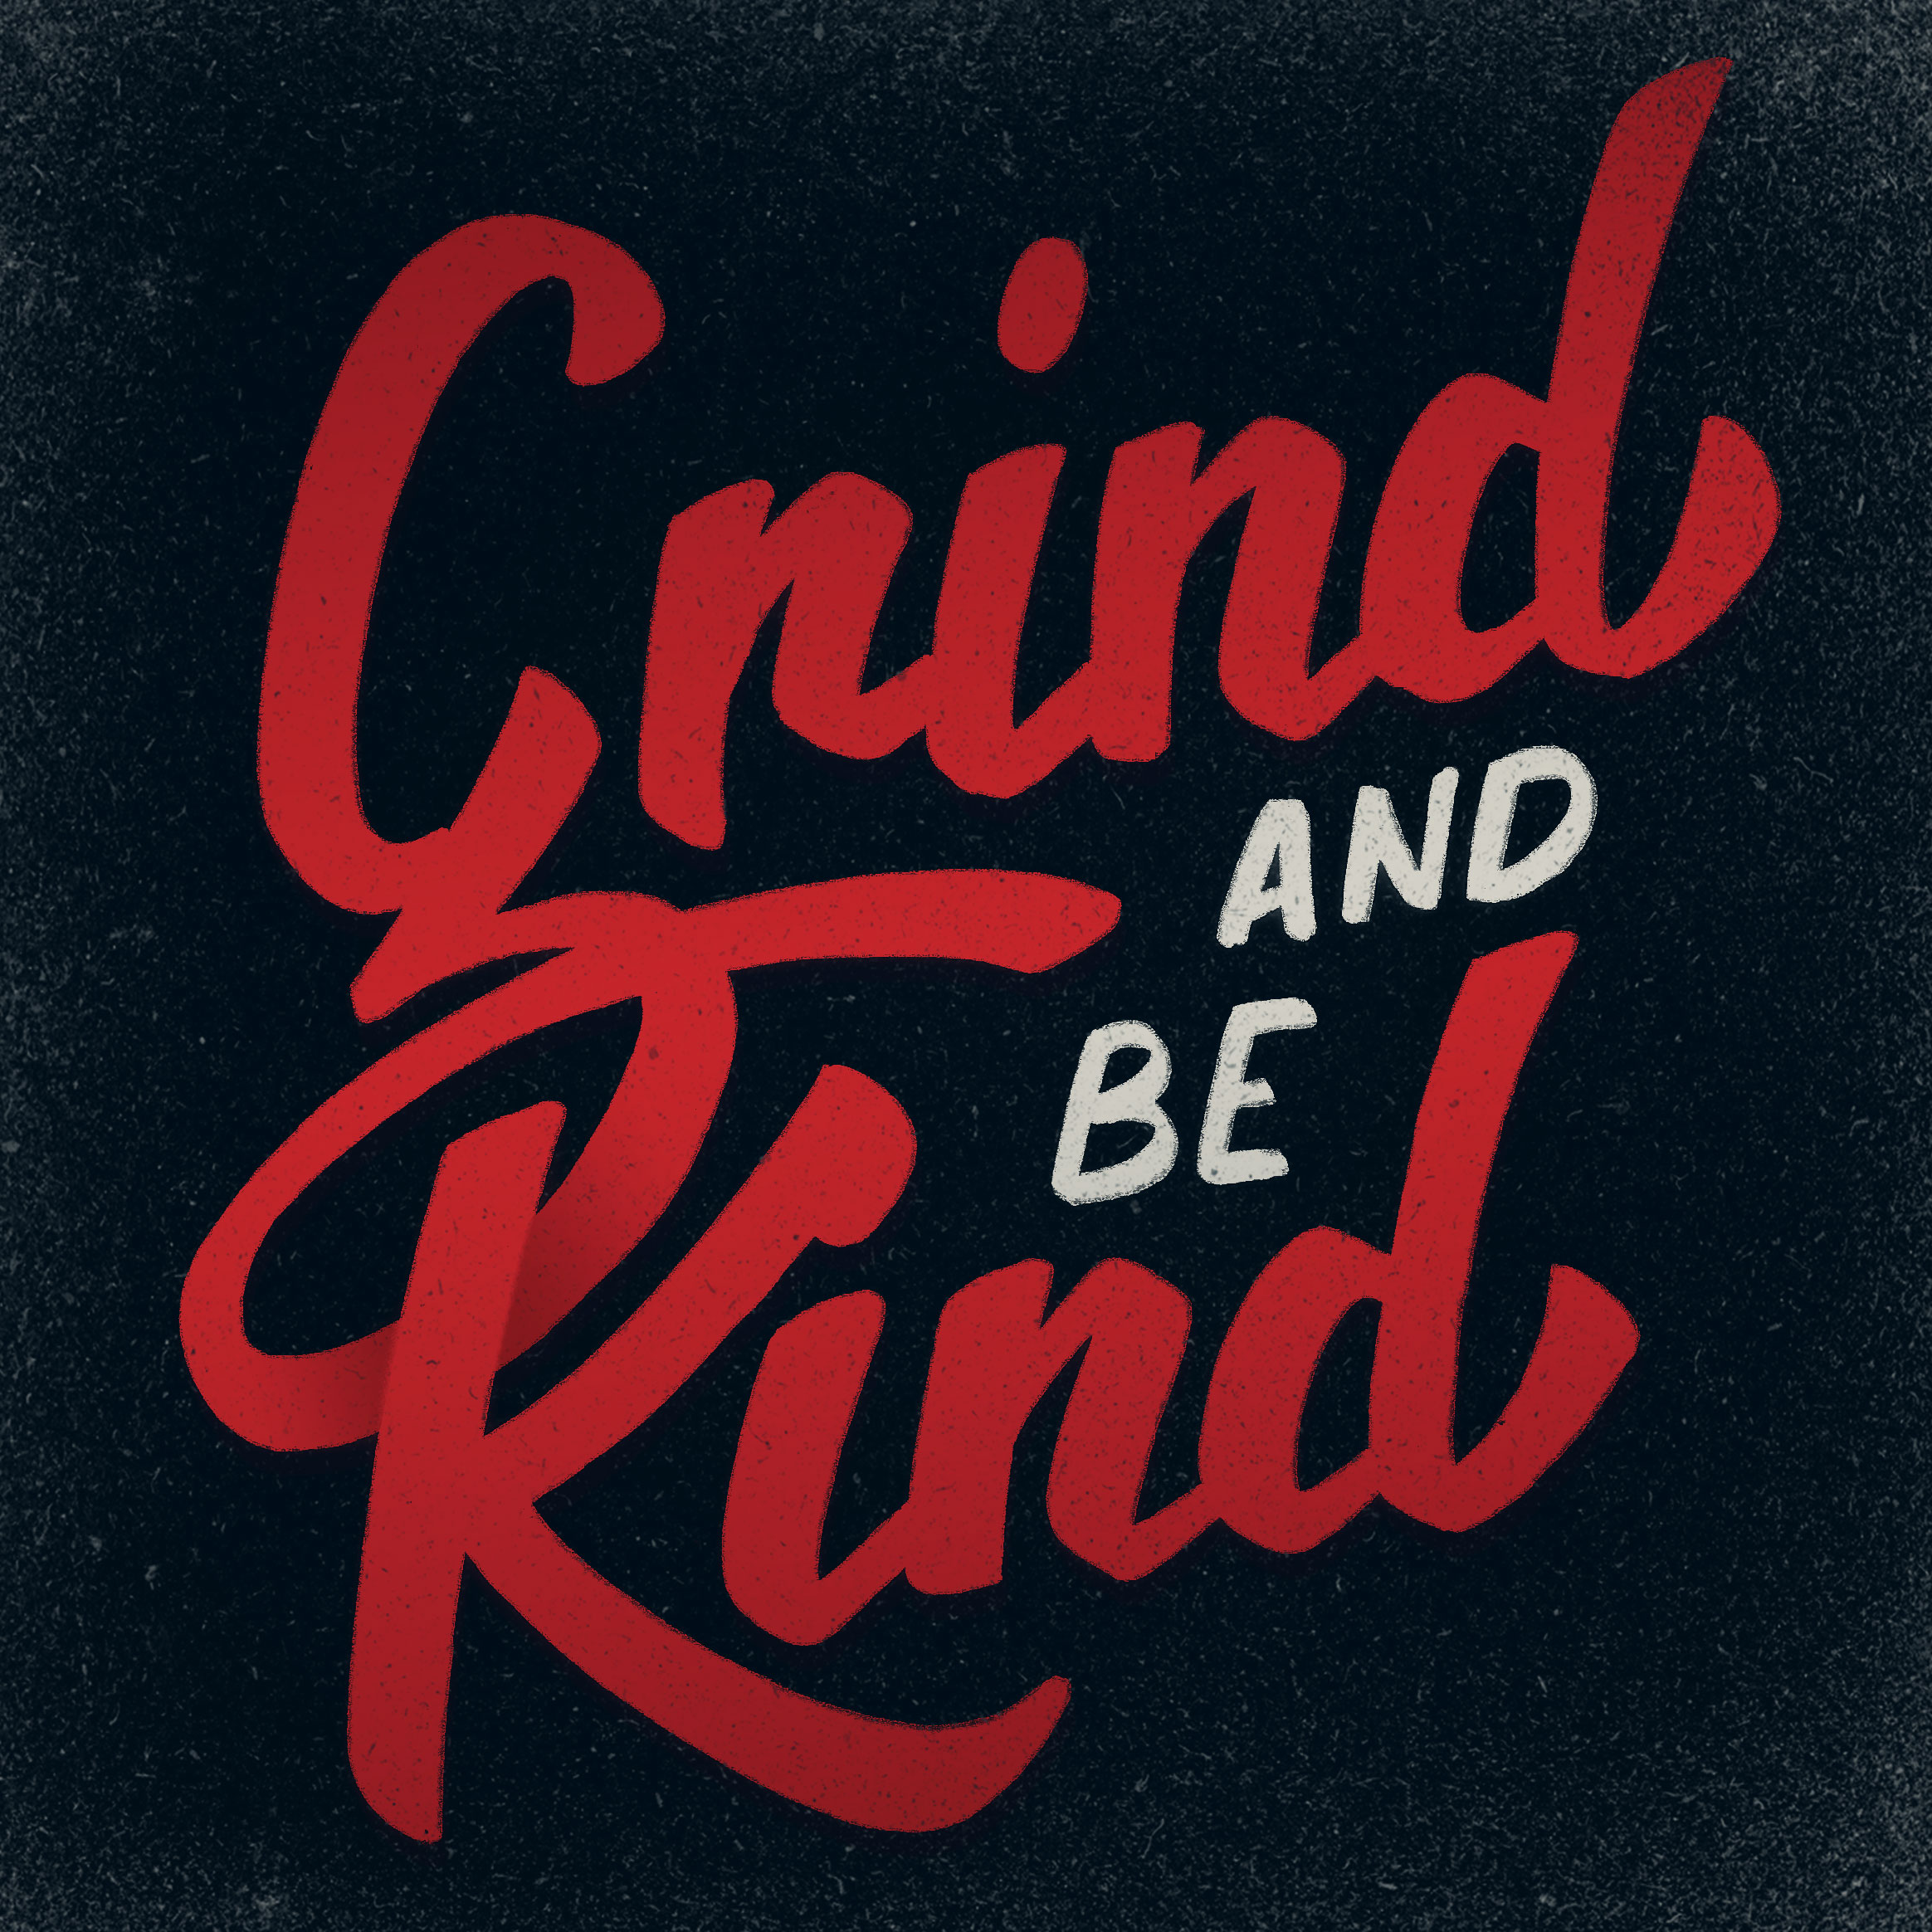 Motivation Monday 16 - Grind and be kind